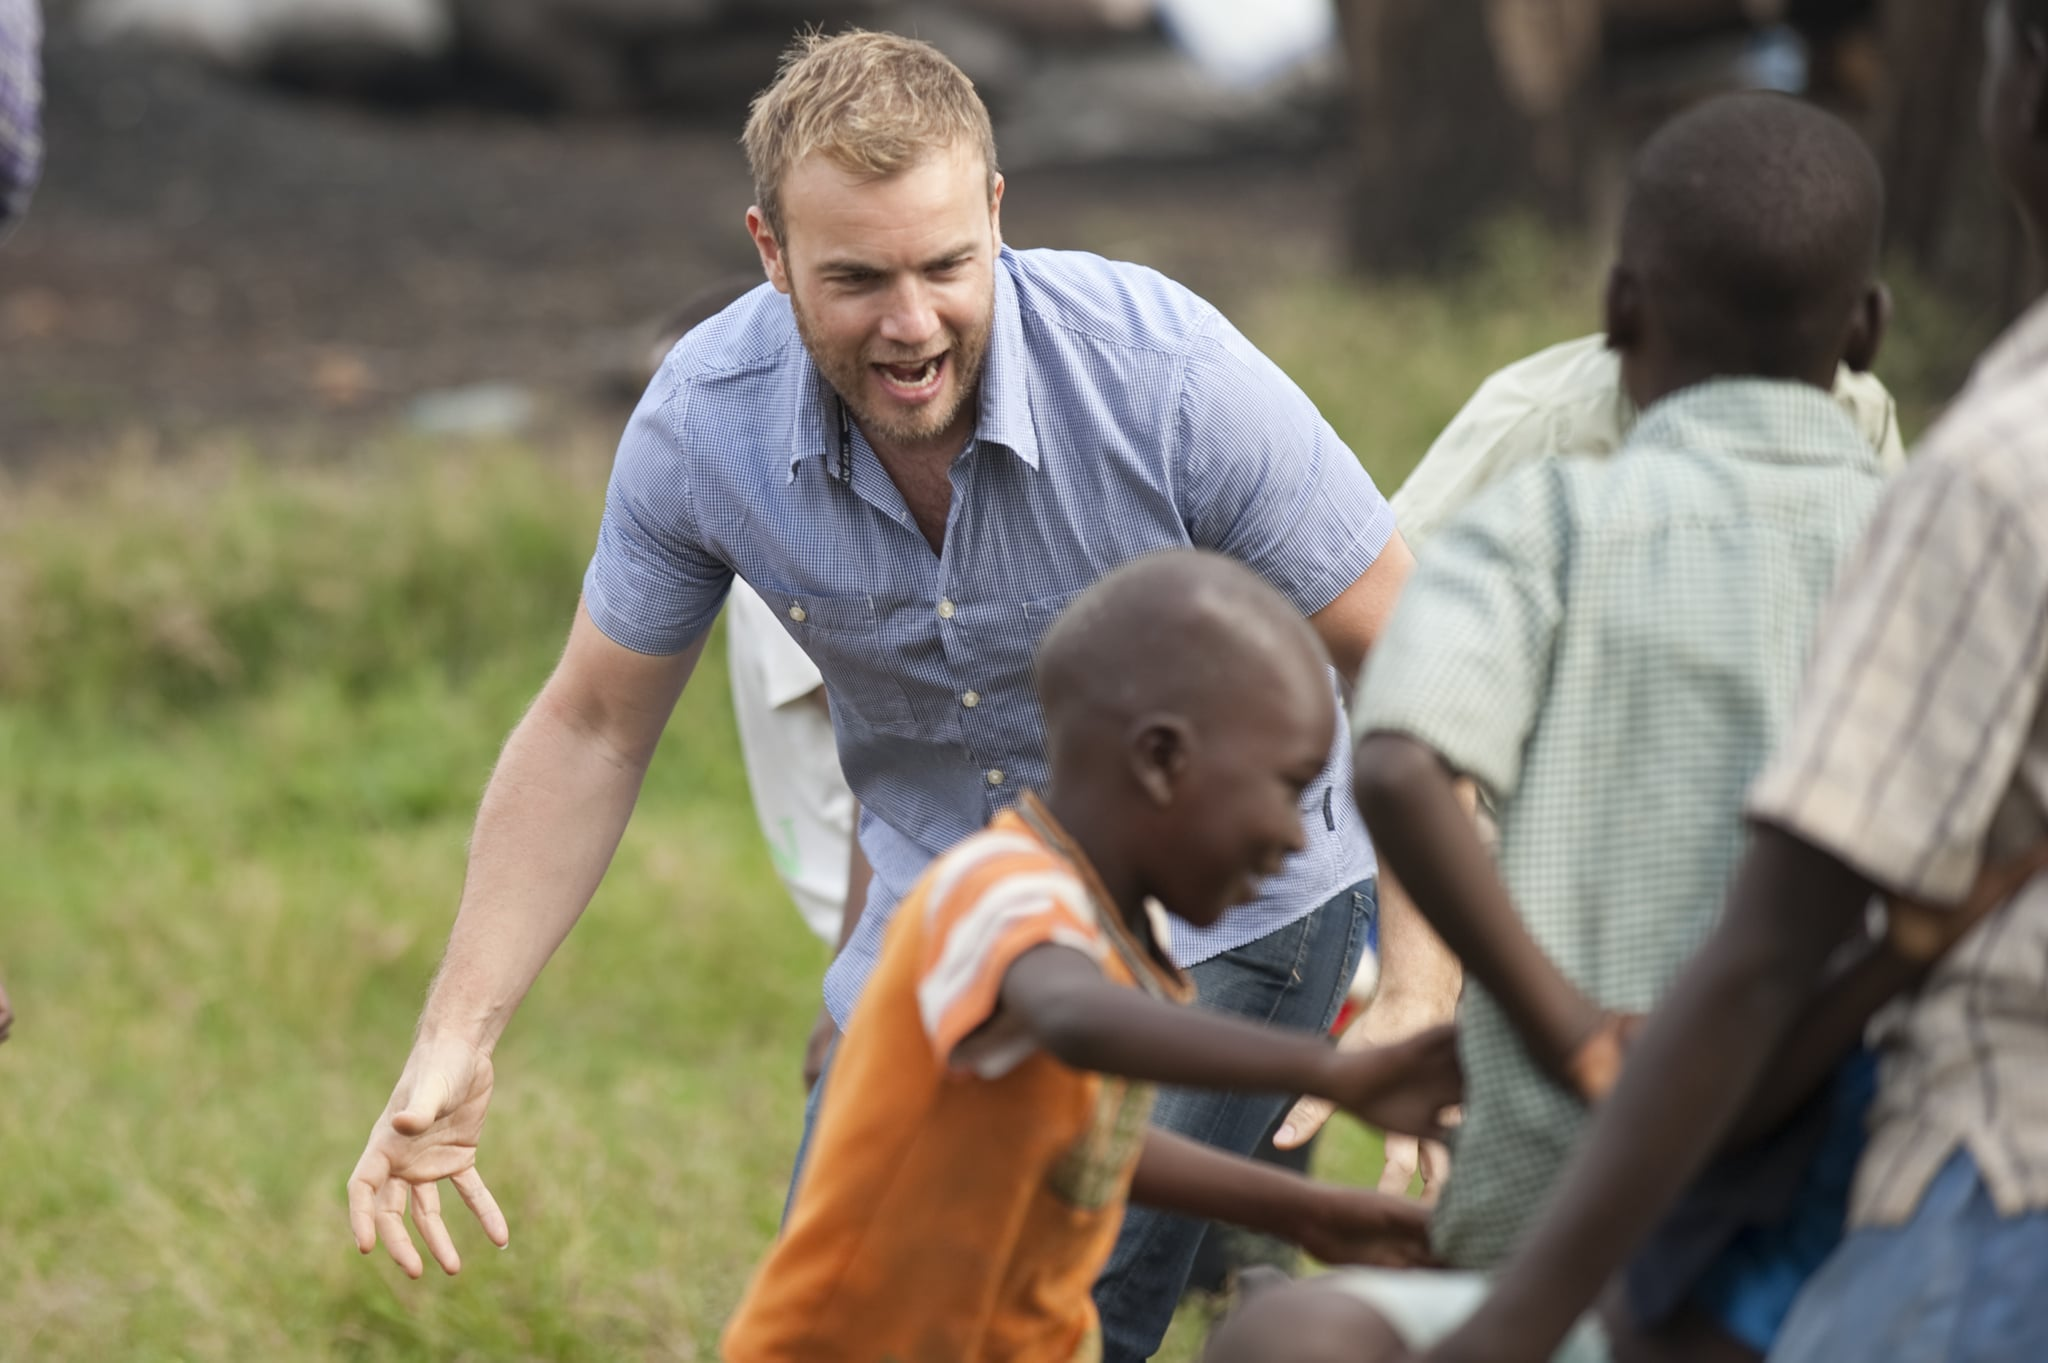 HOIMA, UGANDA - NOVEMBER 29: Gary Barlow plays with the local children before heading to the Bulimya net distribution area on November 29, 2009 in Hoima, Uganda. Five of the nine celebrity Kilimanjaro climbers, Gary Barlow, Fearne Cotton, Ben Shepherd, Chris Moyles and Kimberley Walsh, saw all their hard work climbing the mighty Mount Kilimanjaro pay off as they witnessed for themselves how some of the money raised is being spent to help to fight malaria, Africa's biggest killer. The team are revisiting Africa to see how the money raised over Red Nose Day is being spent, as well as helping to hand out malaria nets. You can see how the team got on by watching BBC One 6.30pm Sunday 27th December.  (Photo by Des Willie/Comic Relief via Getty Images)